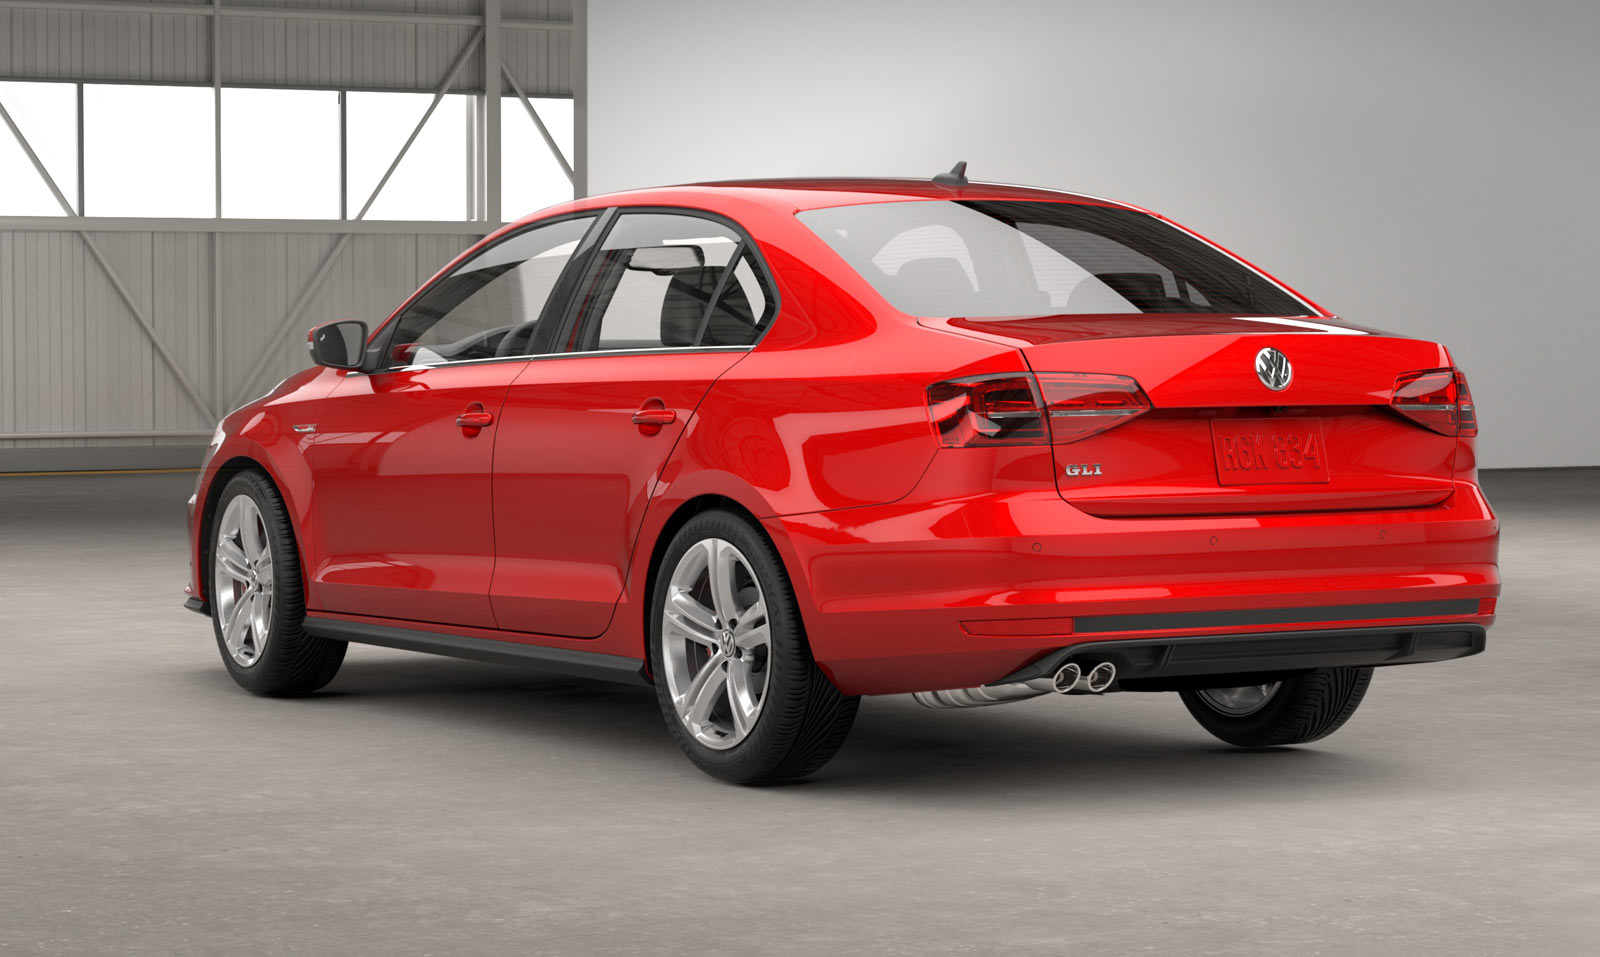 2016 vw jetta gli revealed with more aggressive style 210 hp news. Black Bedroom Furniture Sets. Home Design Ideas